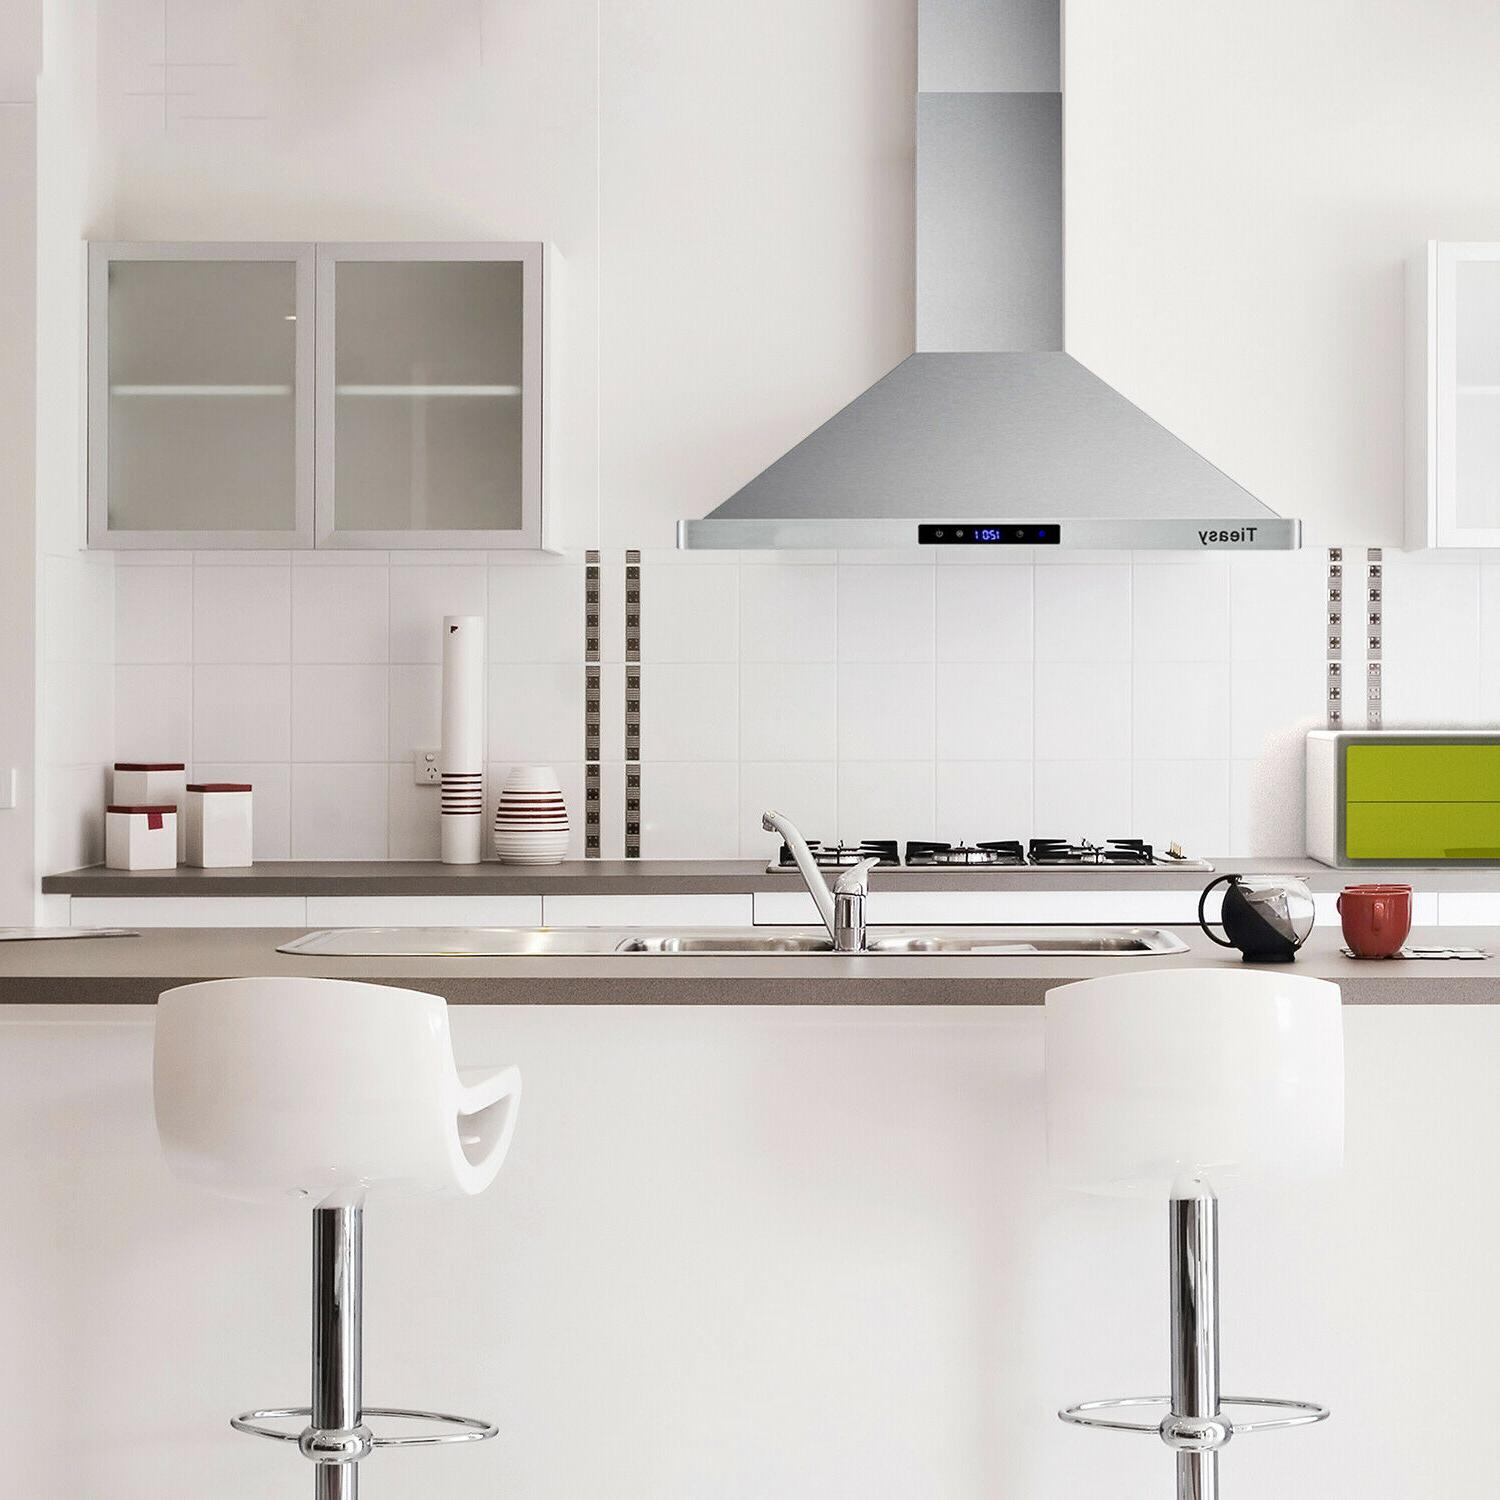 30 inch Wall Hood Stainless Steel Vent